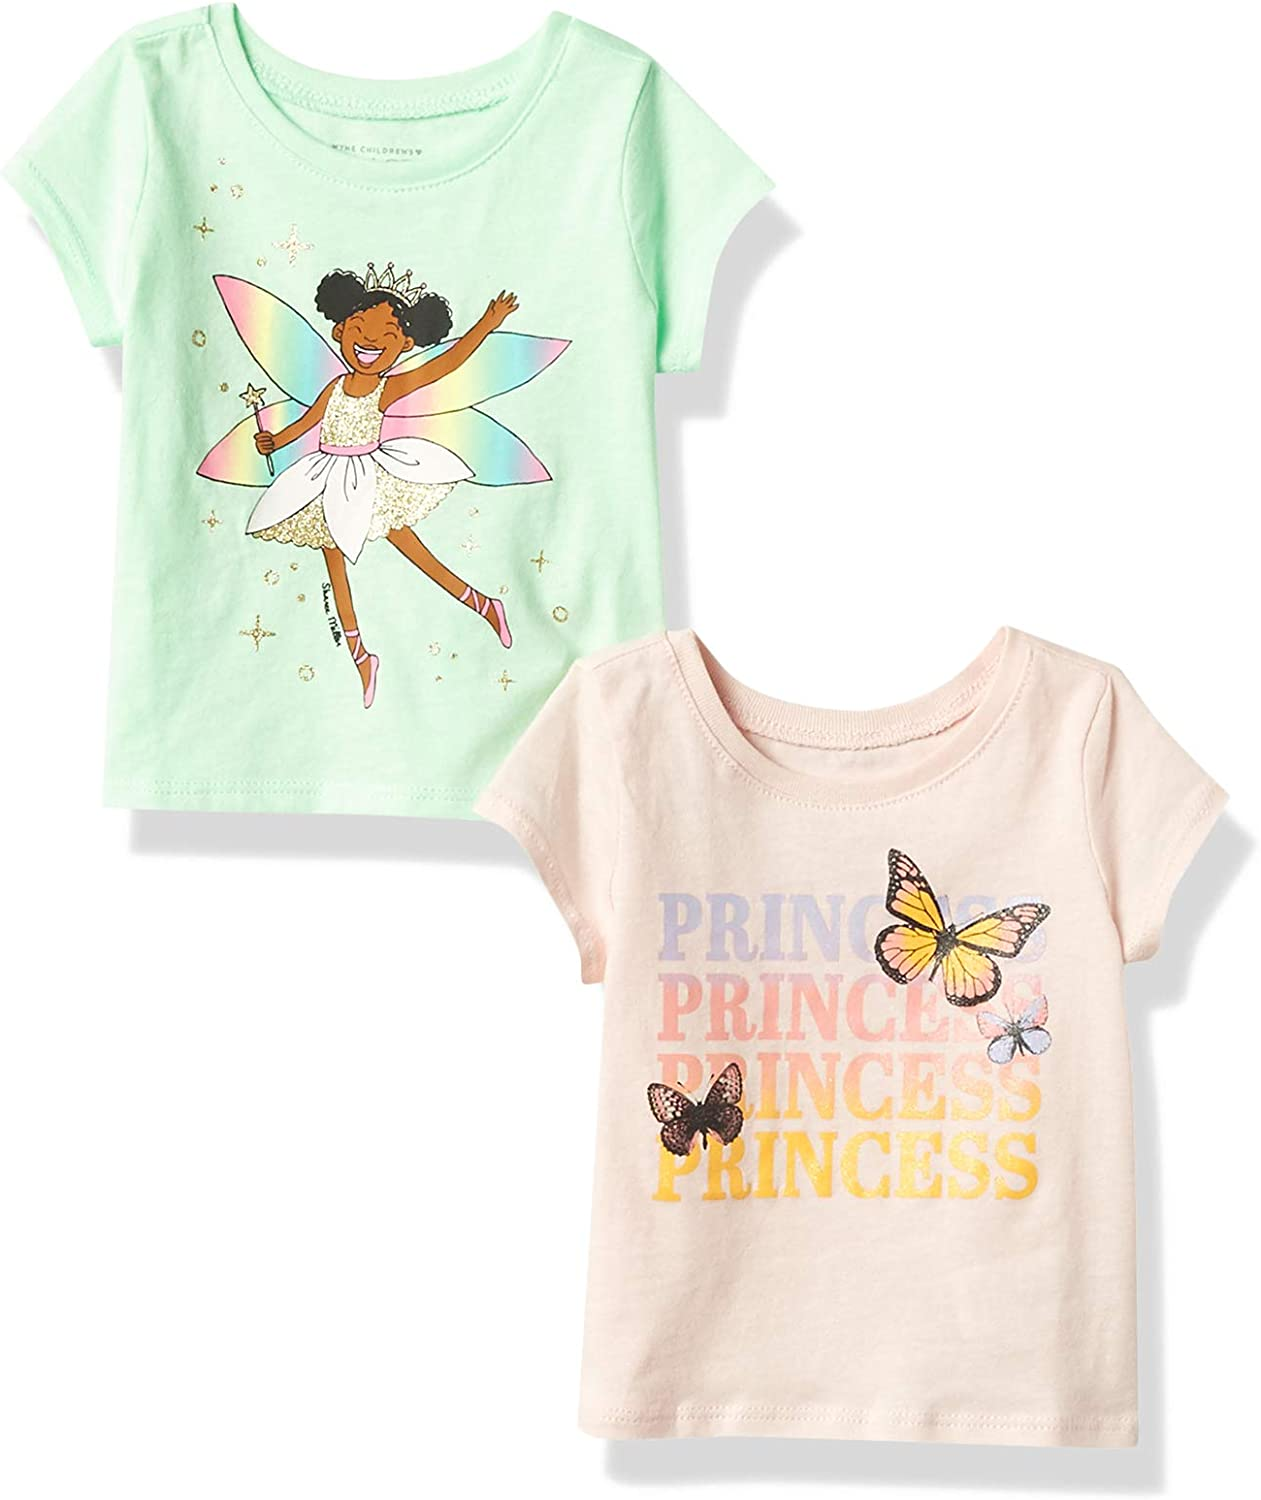 The Children's Place Baby and Toddler Girls Princess Graphic Tee 2-Pack